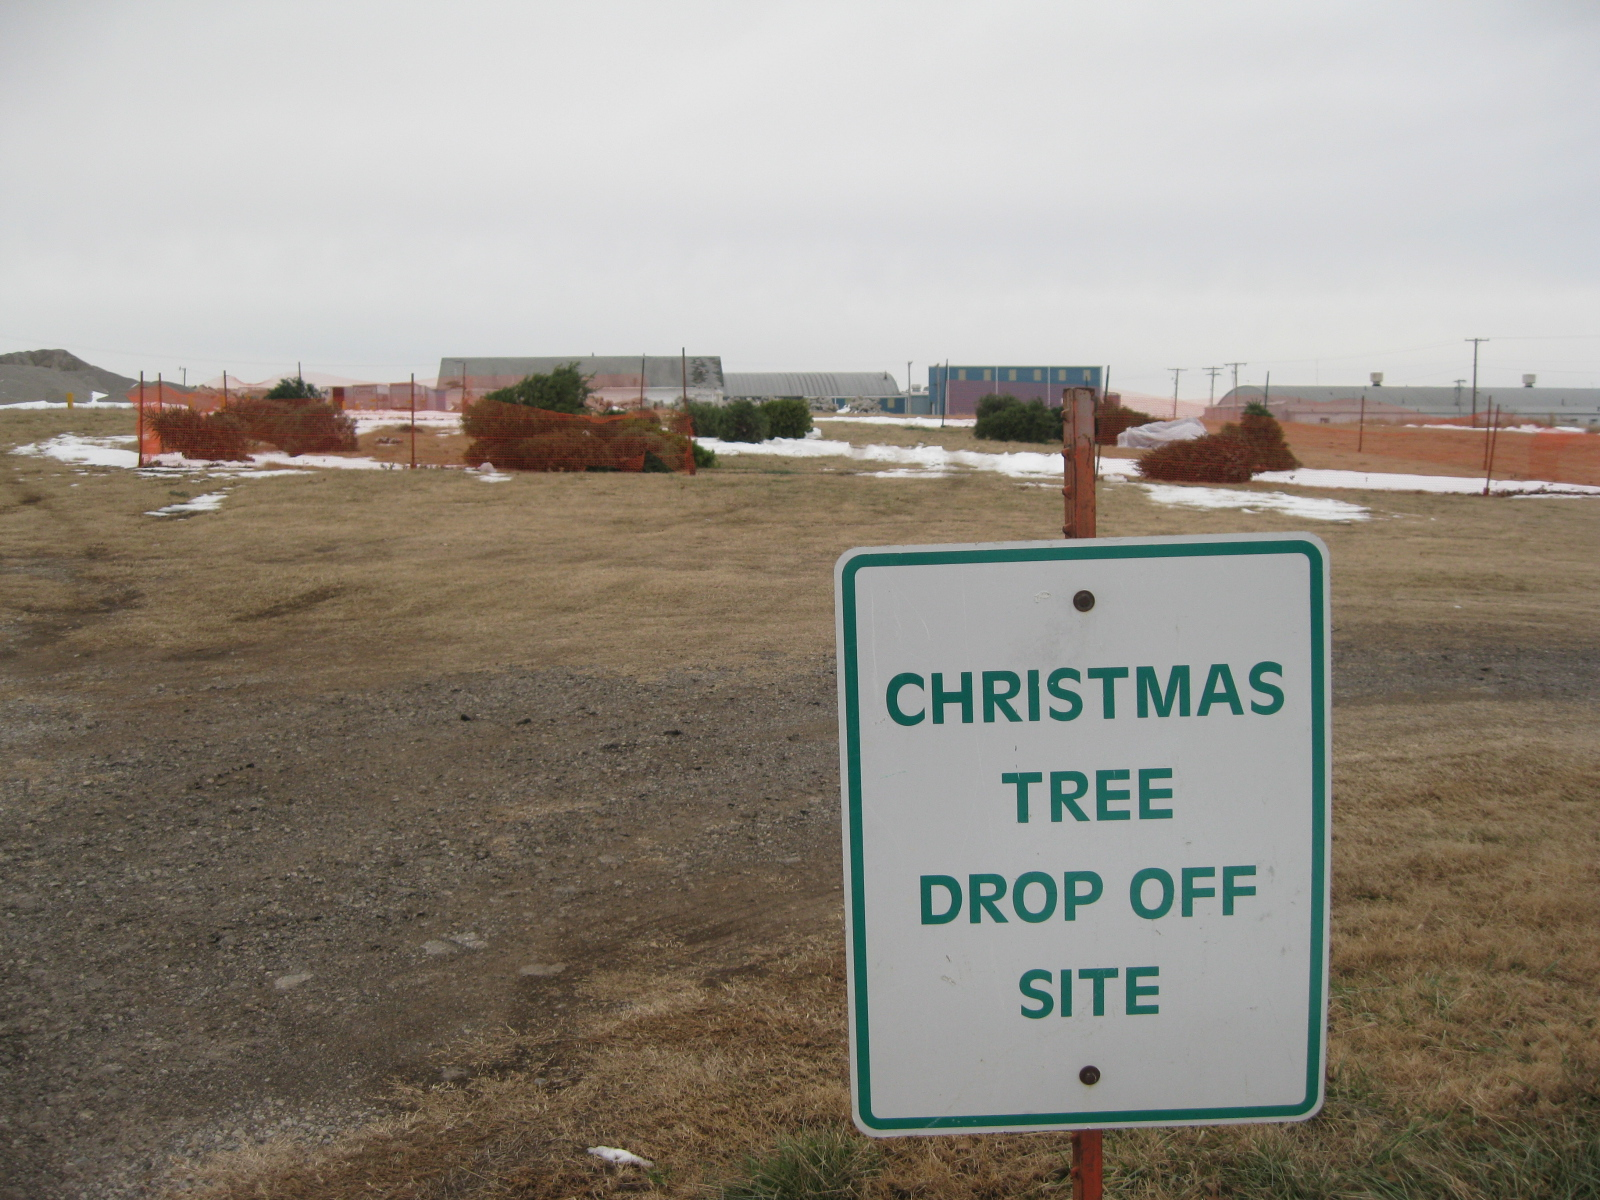 Christmas tree drop-off site